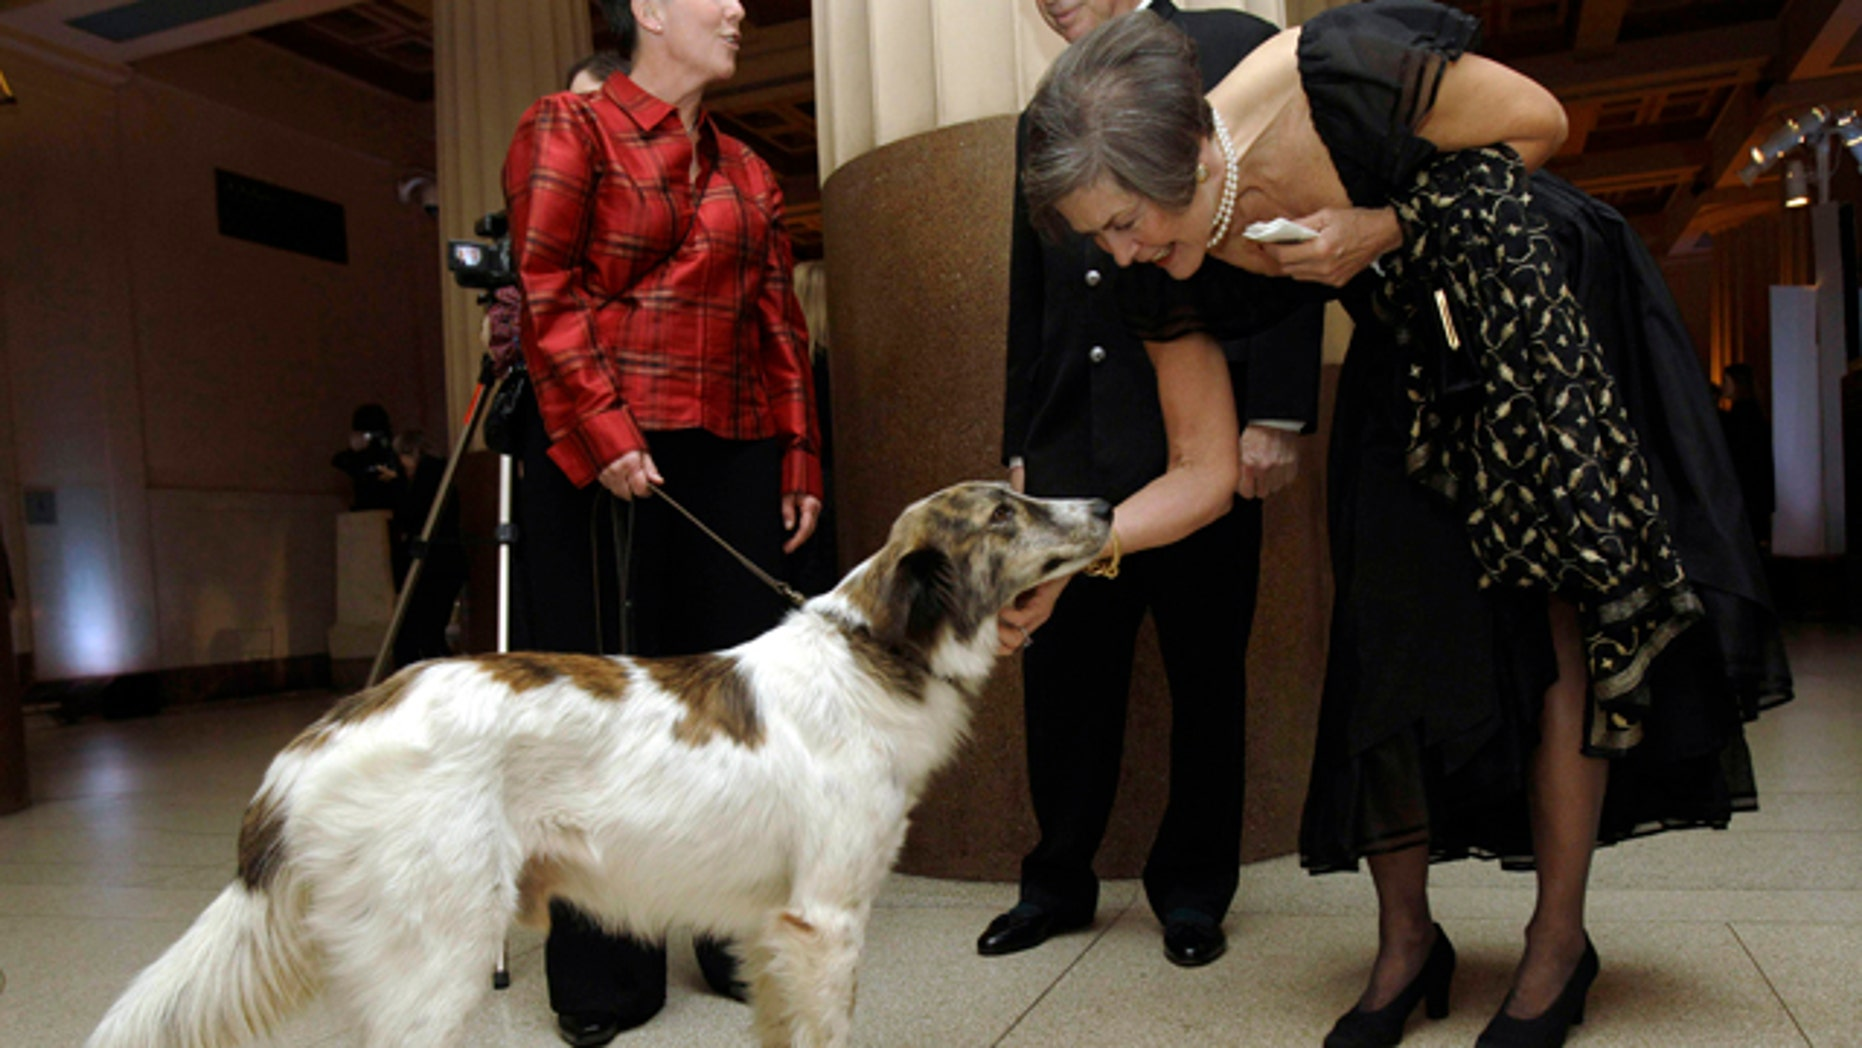 Dec. 9: Guest Ruth Hoffman, right, pets Rufus, a stray Afghan dog credited with saving the lives of 50 U.S. soldiers based in Afghanistan, before the dog was honored at The Animal Medical Center's Top Dog Gala at the Museum of Natural History in New York. (AP)